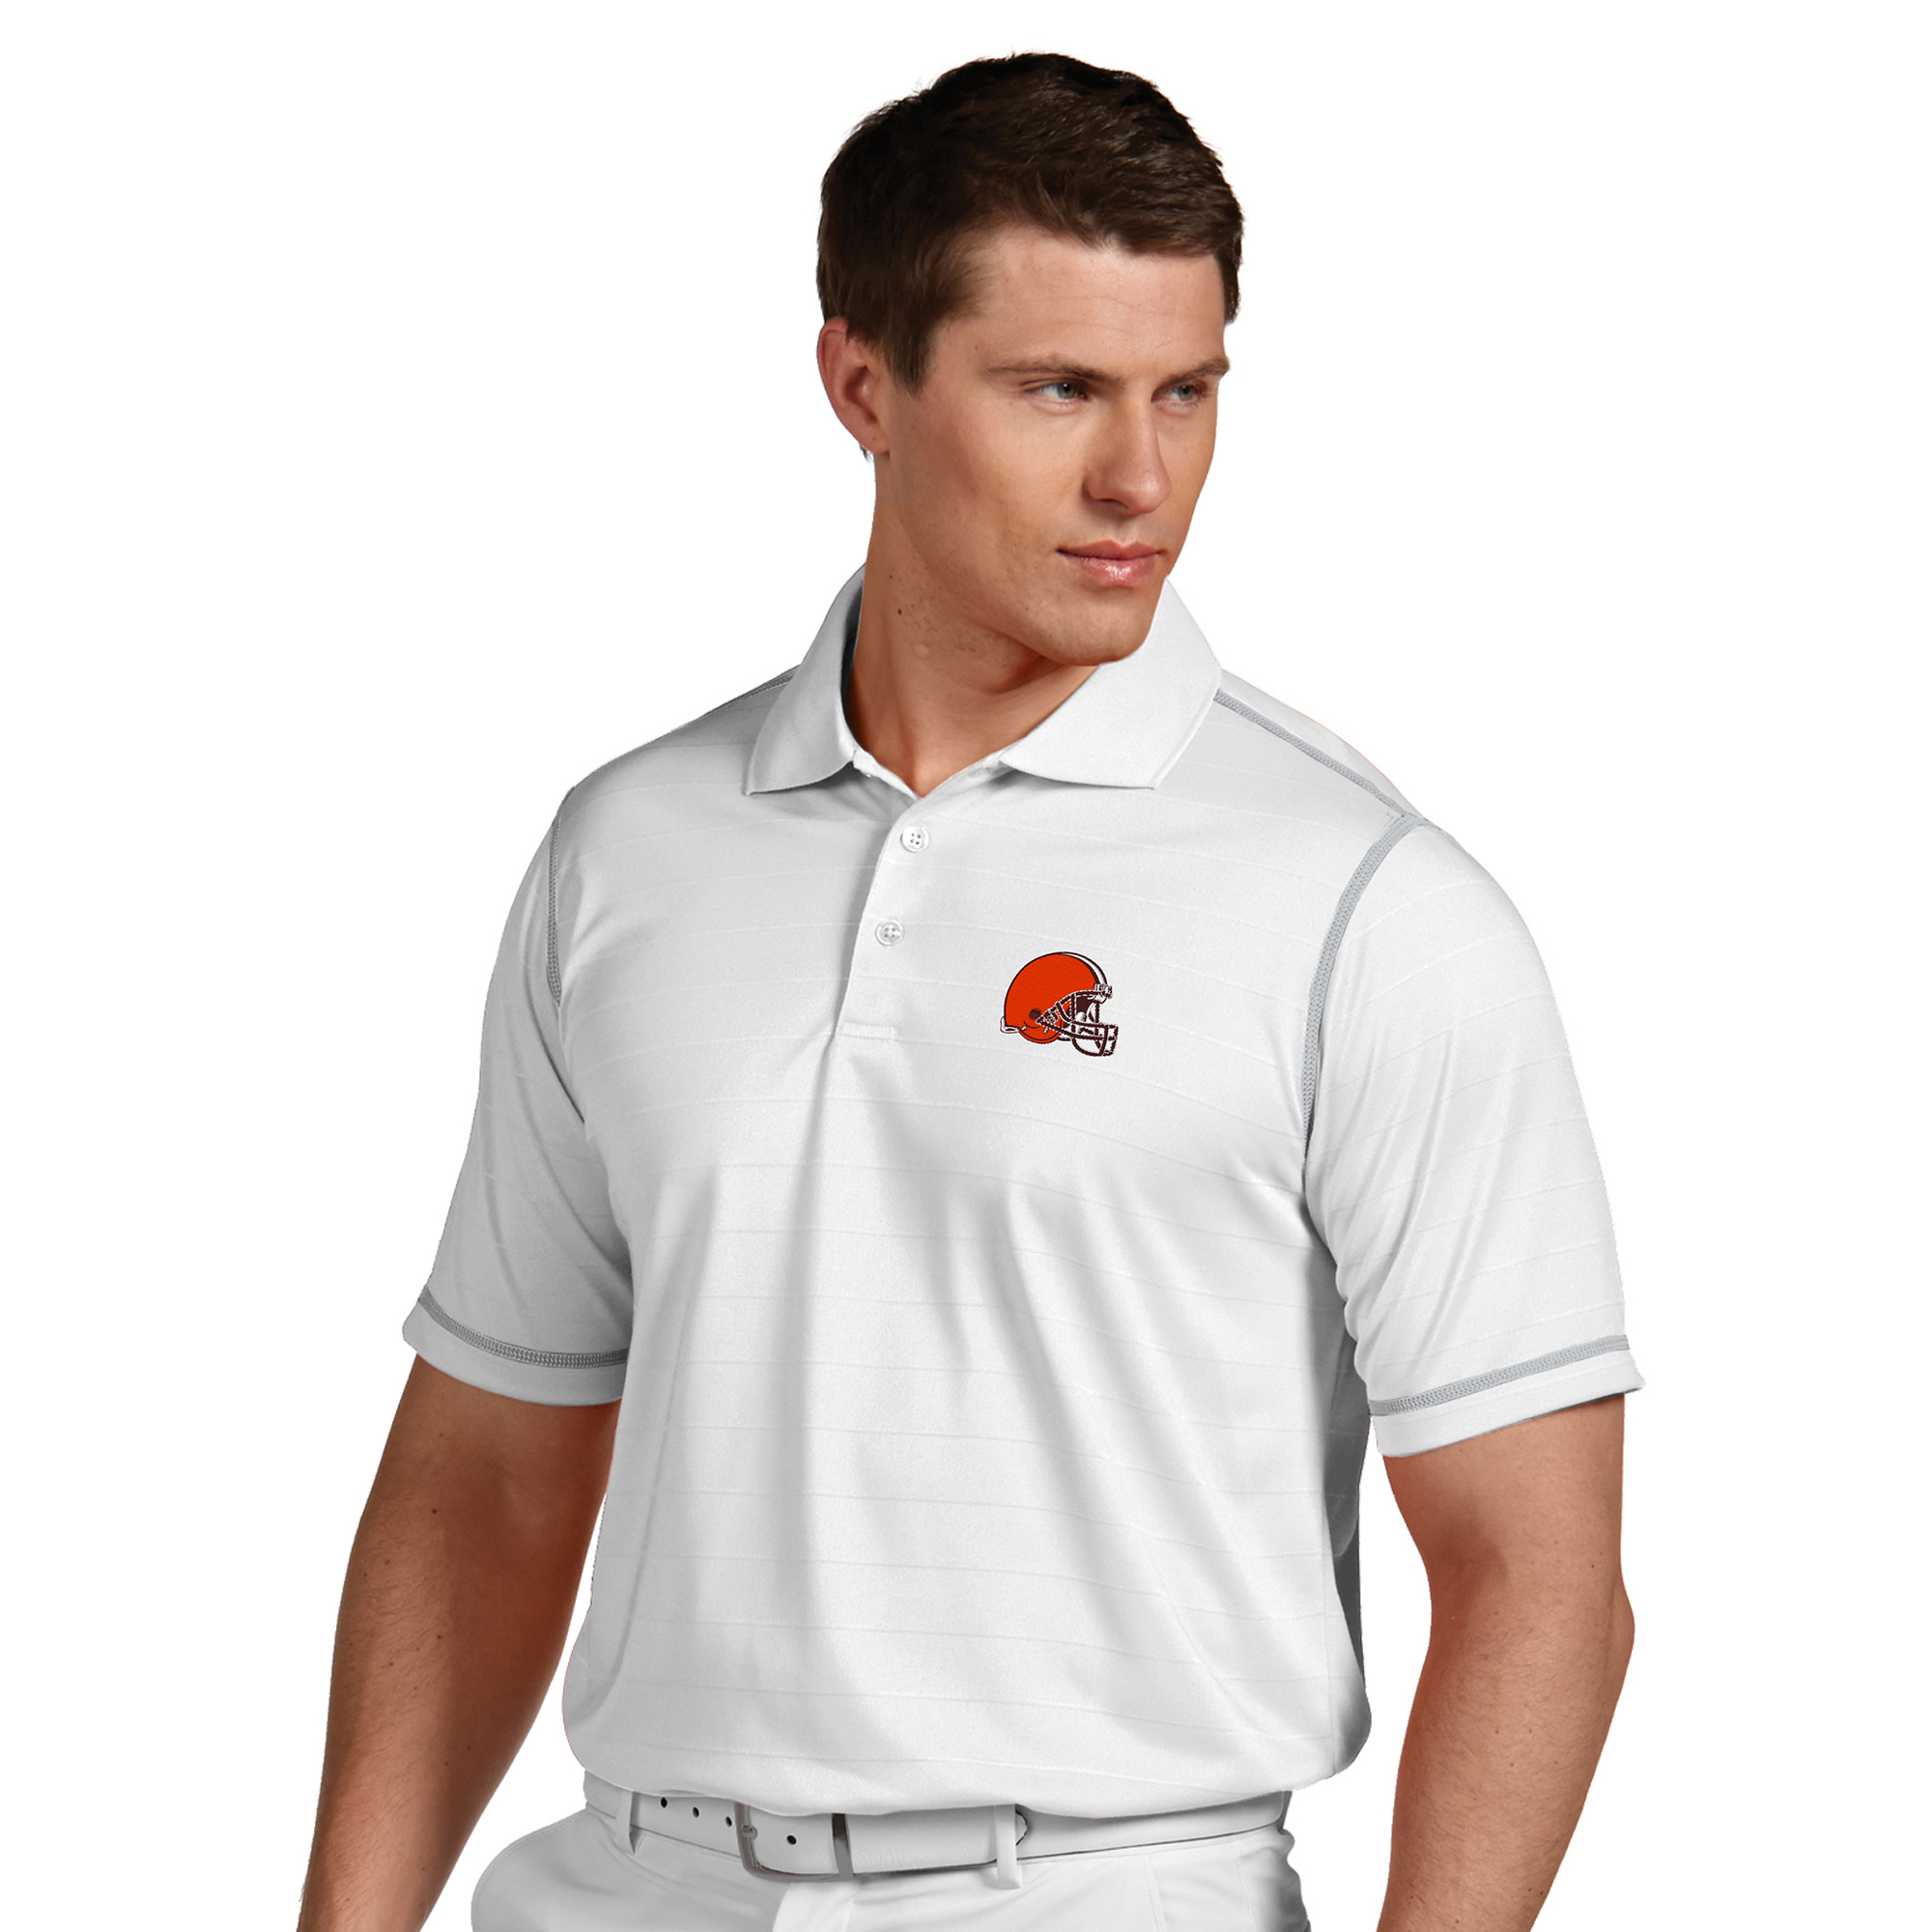 Cleveland Browns Antigua Icon Desert Dry Polo - White - S